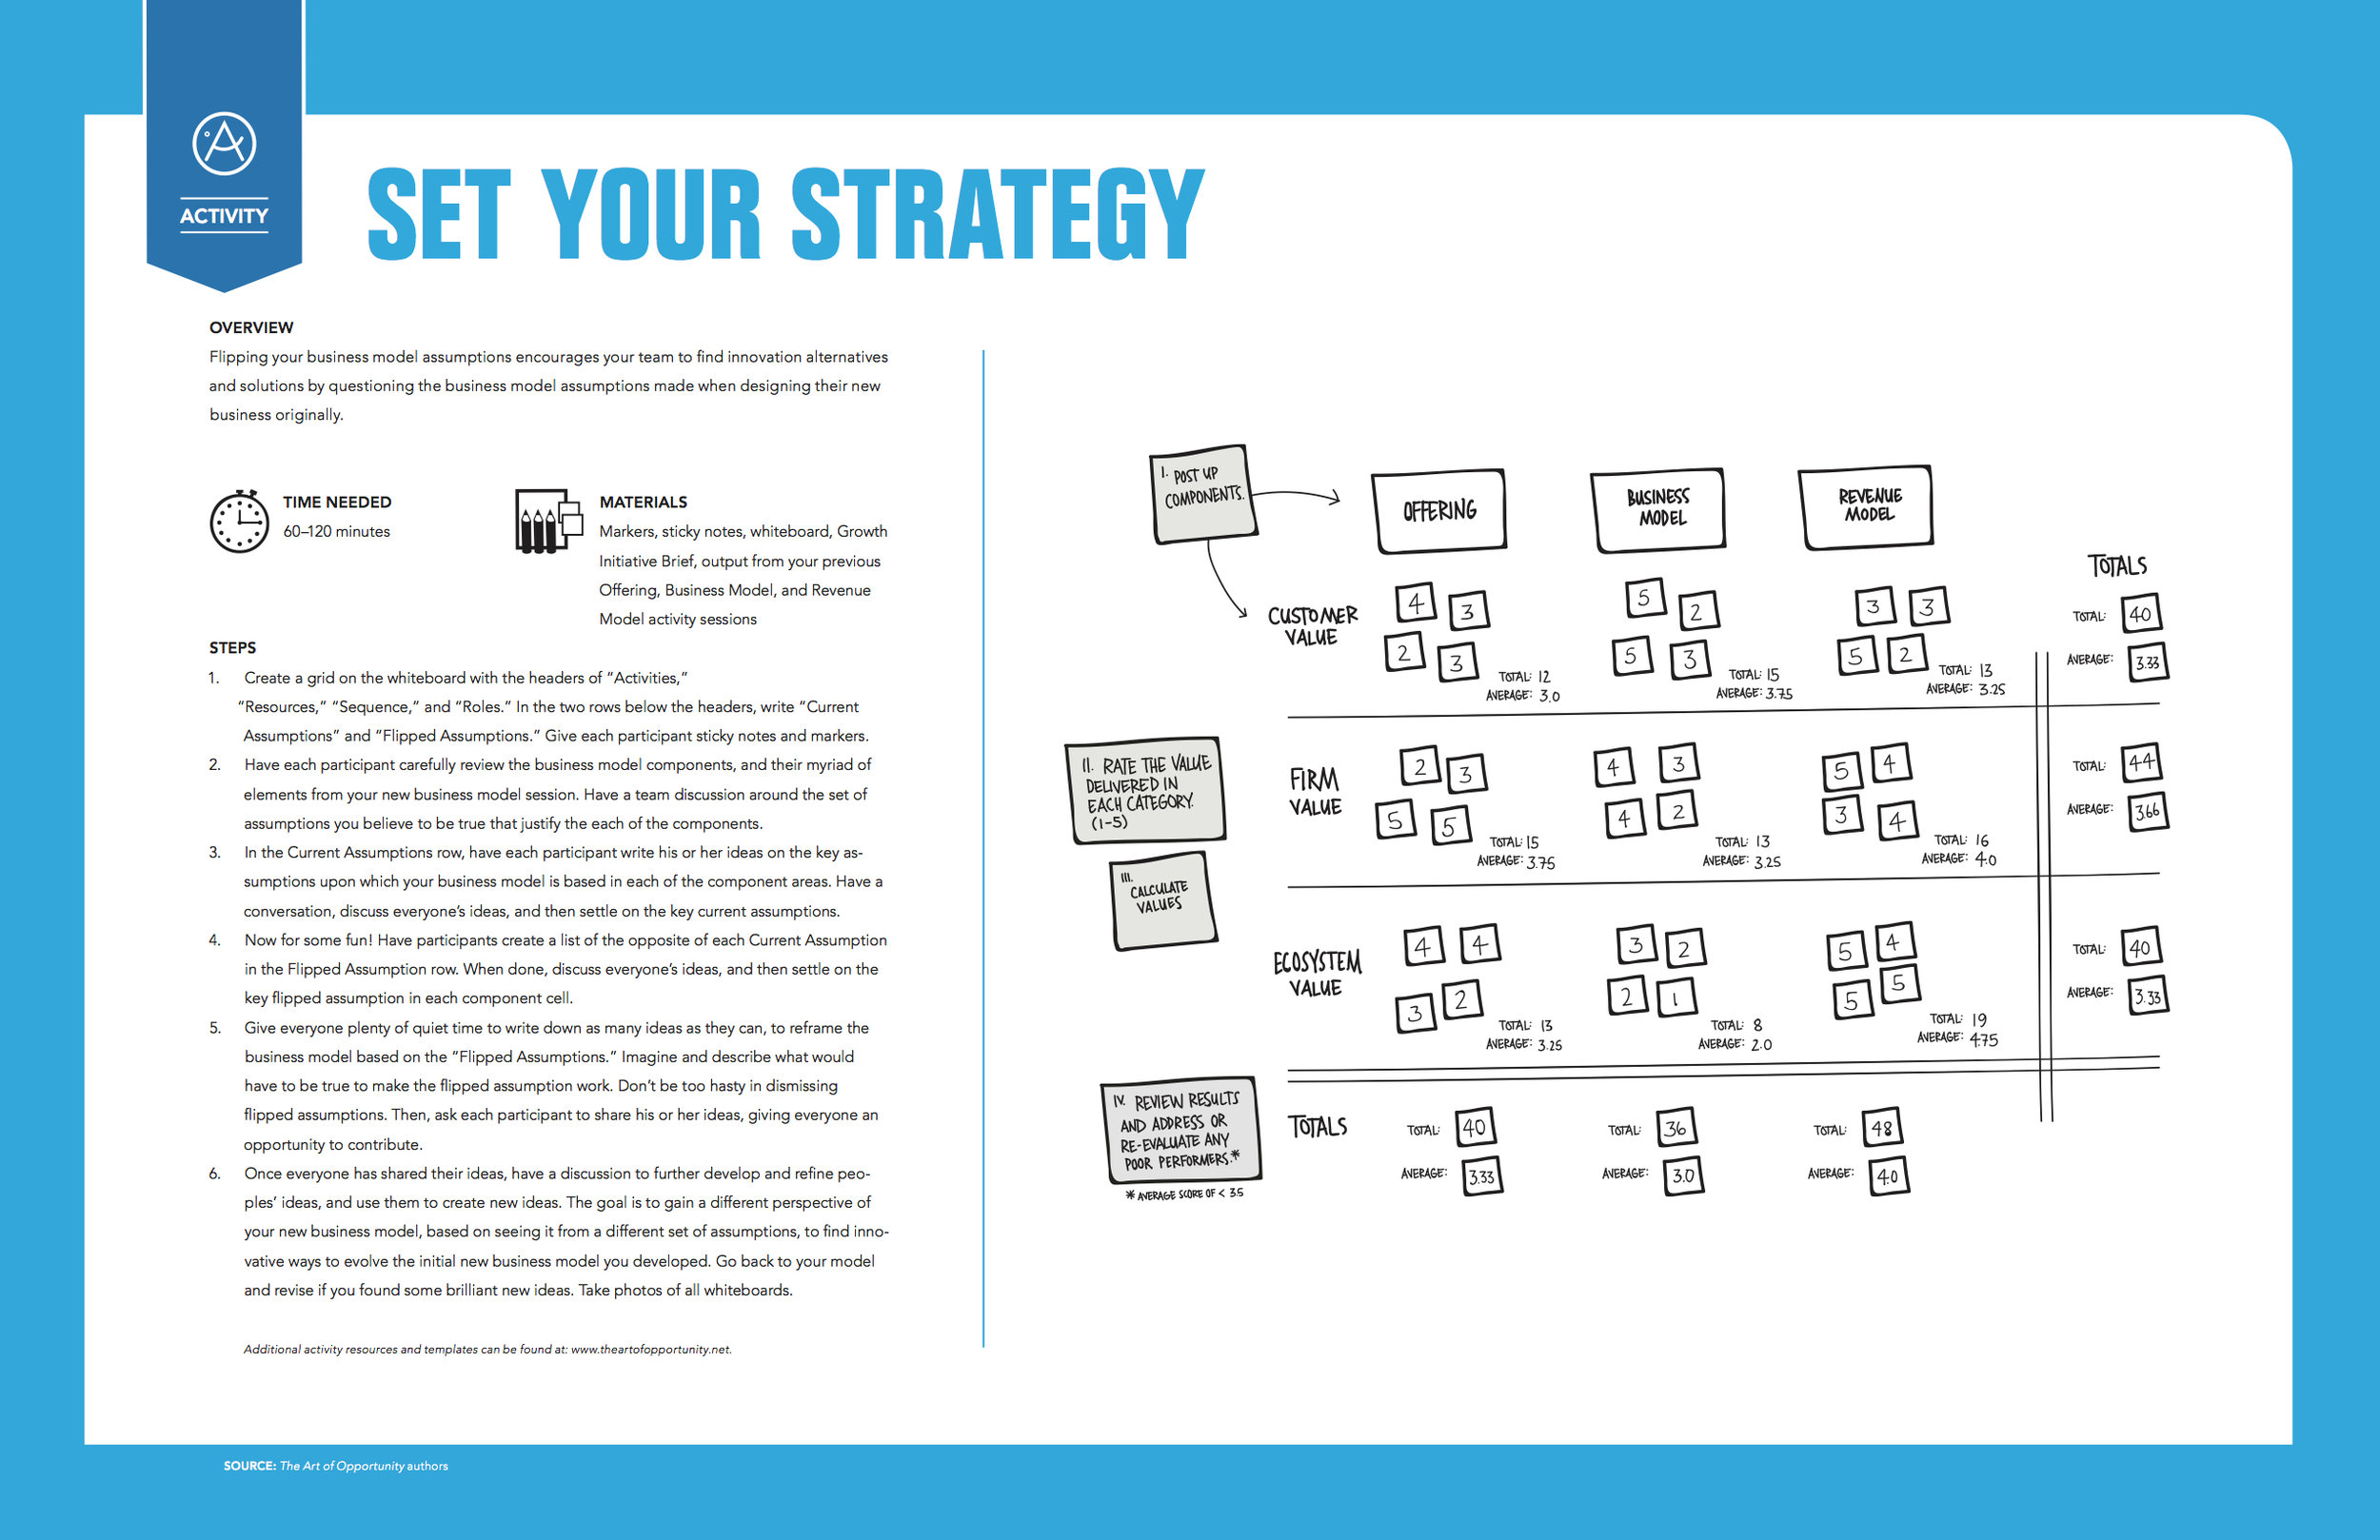 Activity: Set Your Strategy